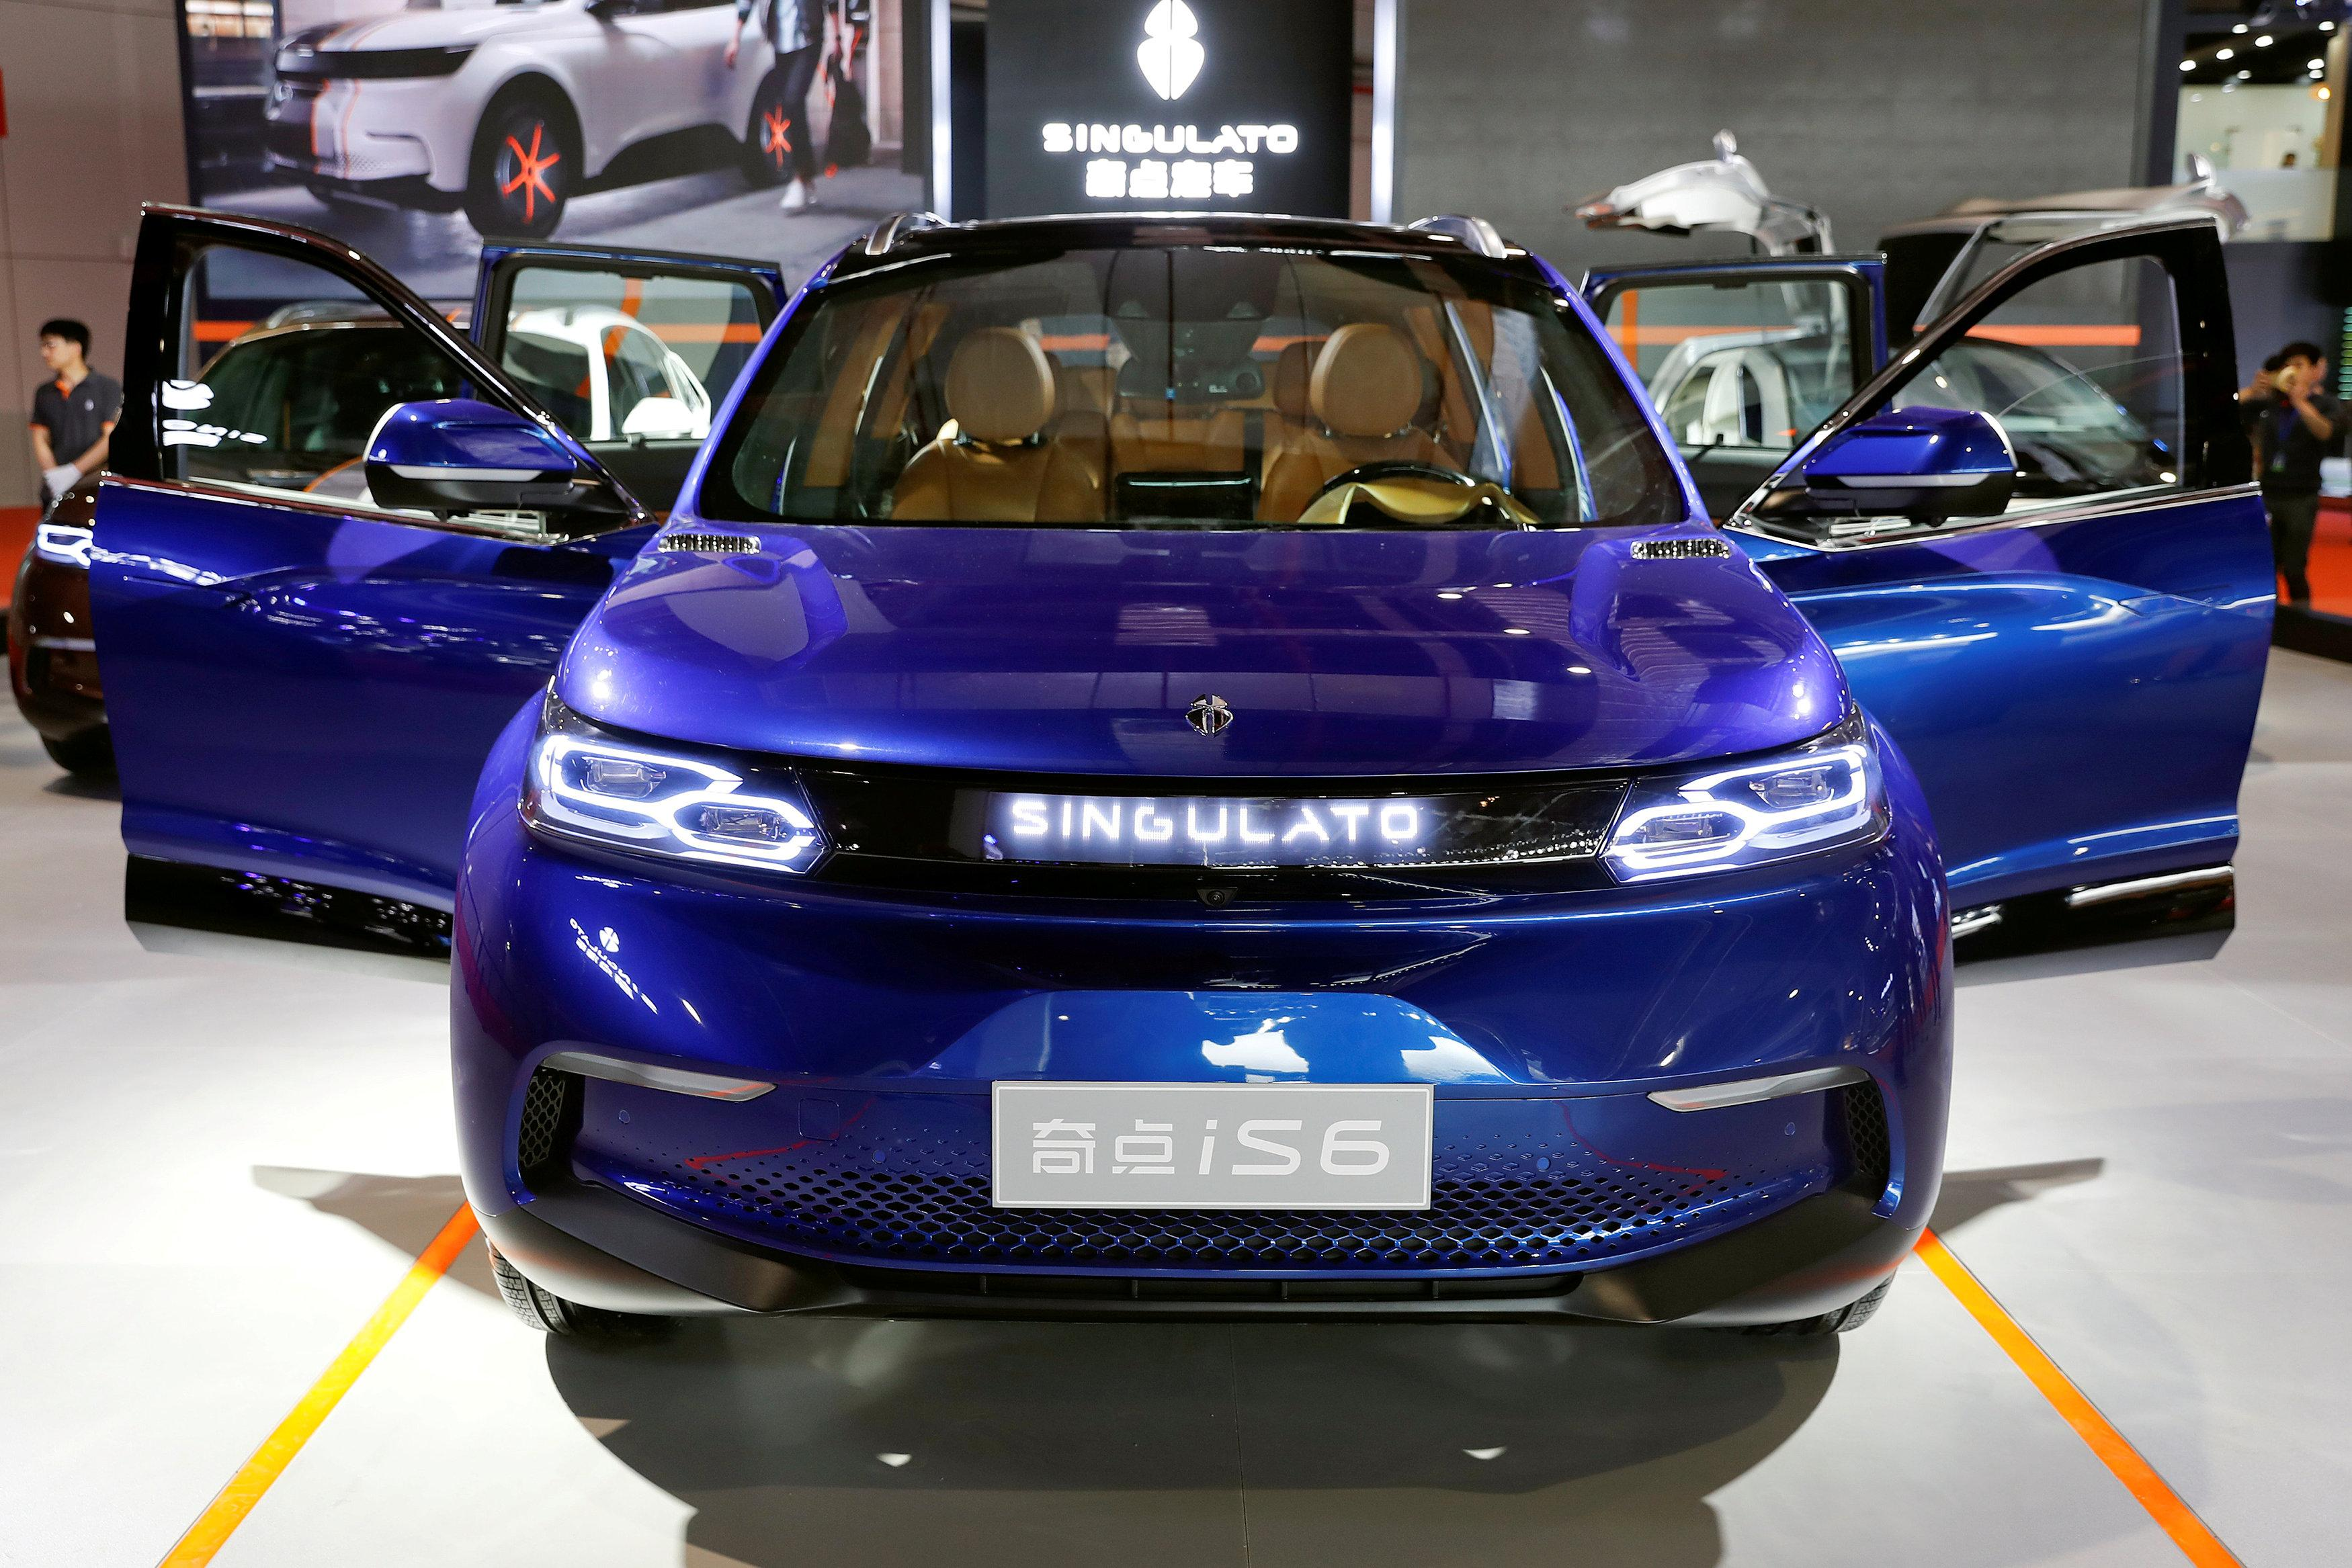 A Singulato iS6 is displayed at Shanghai Auto Show, during its media day, in Shanghai, China April 19, 2017. Aly Song